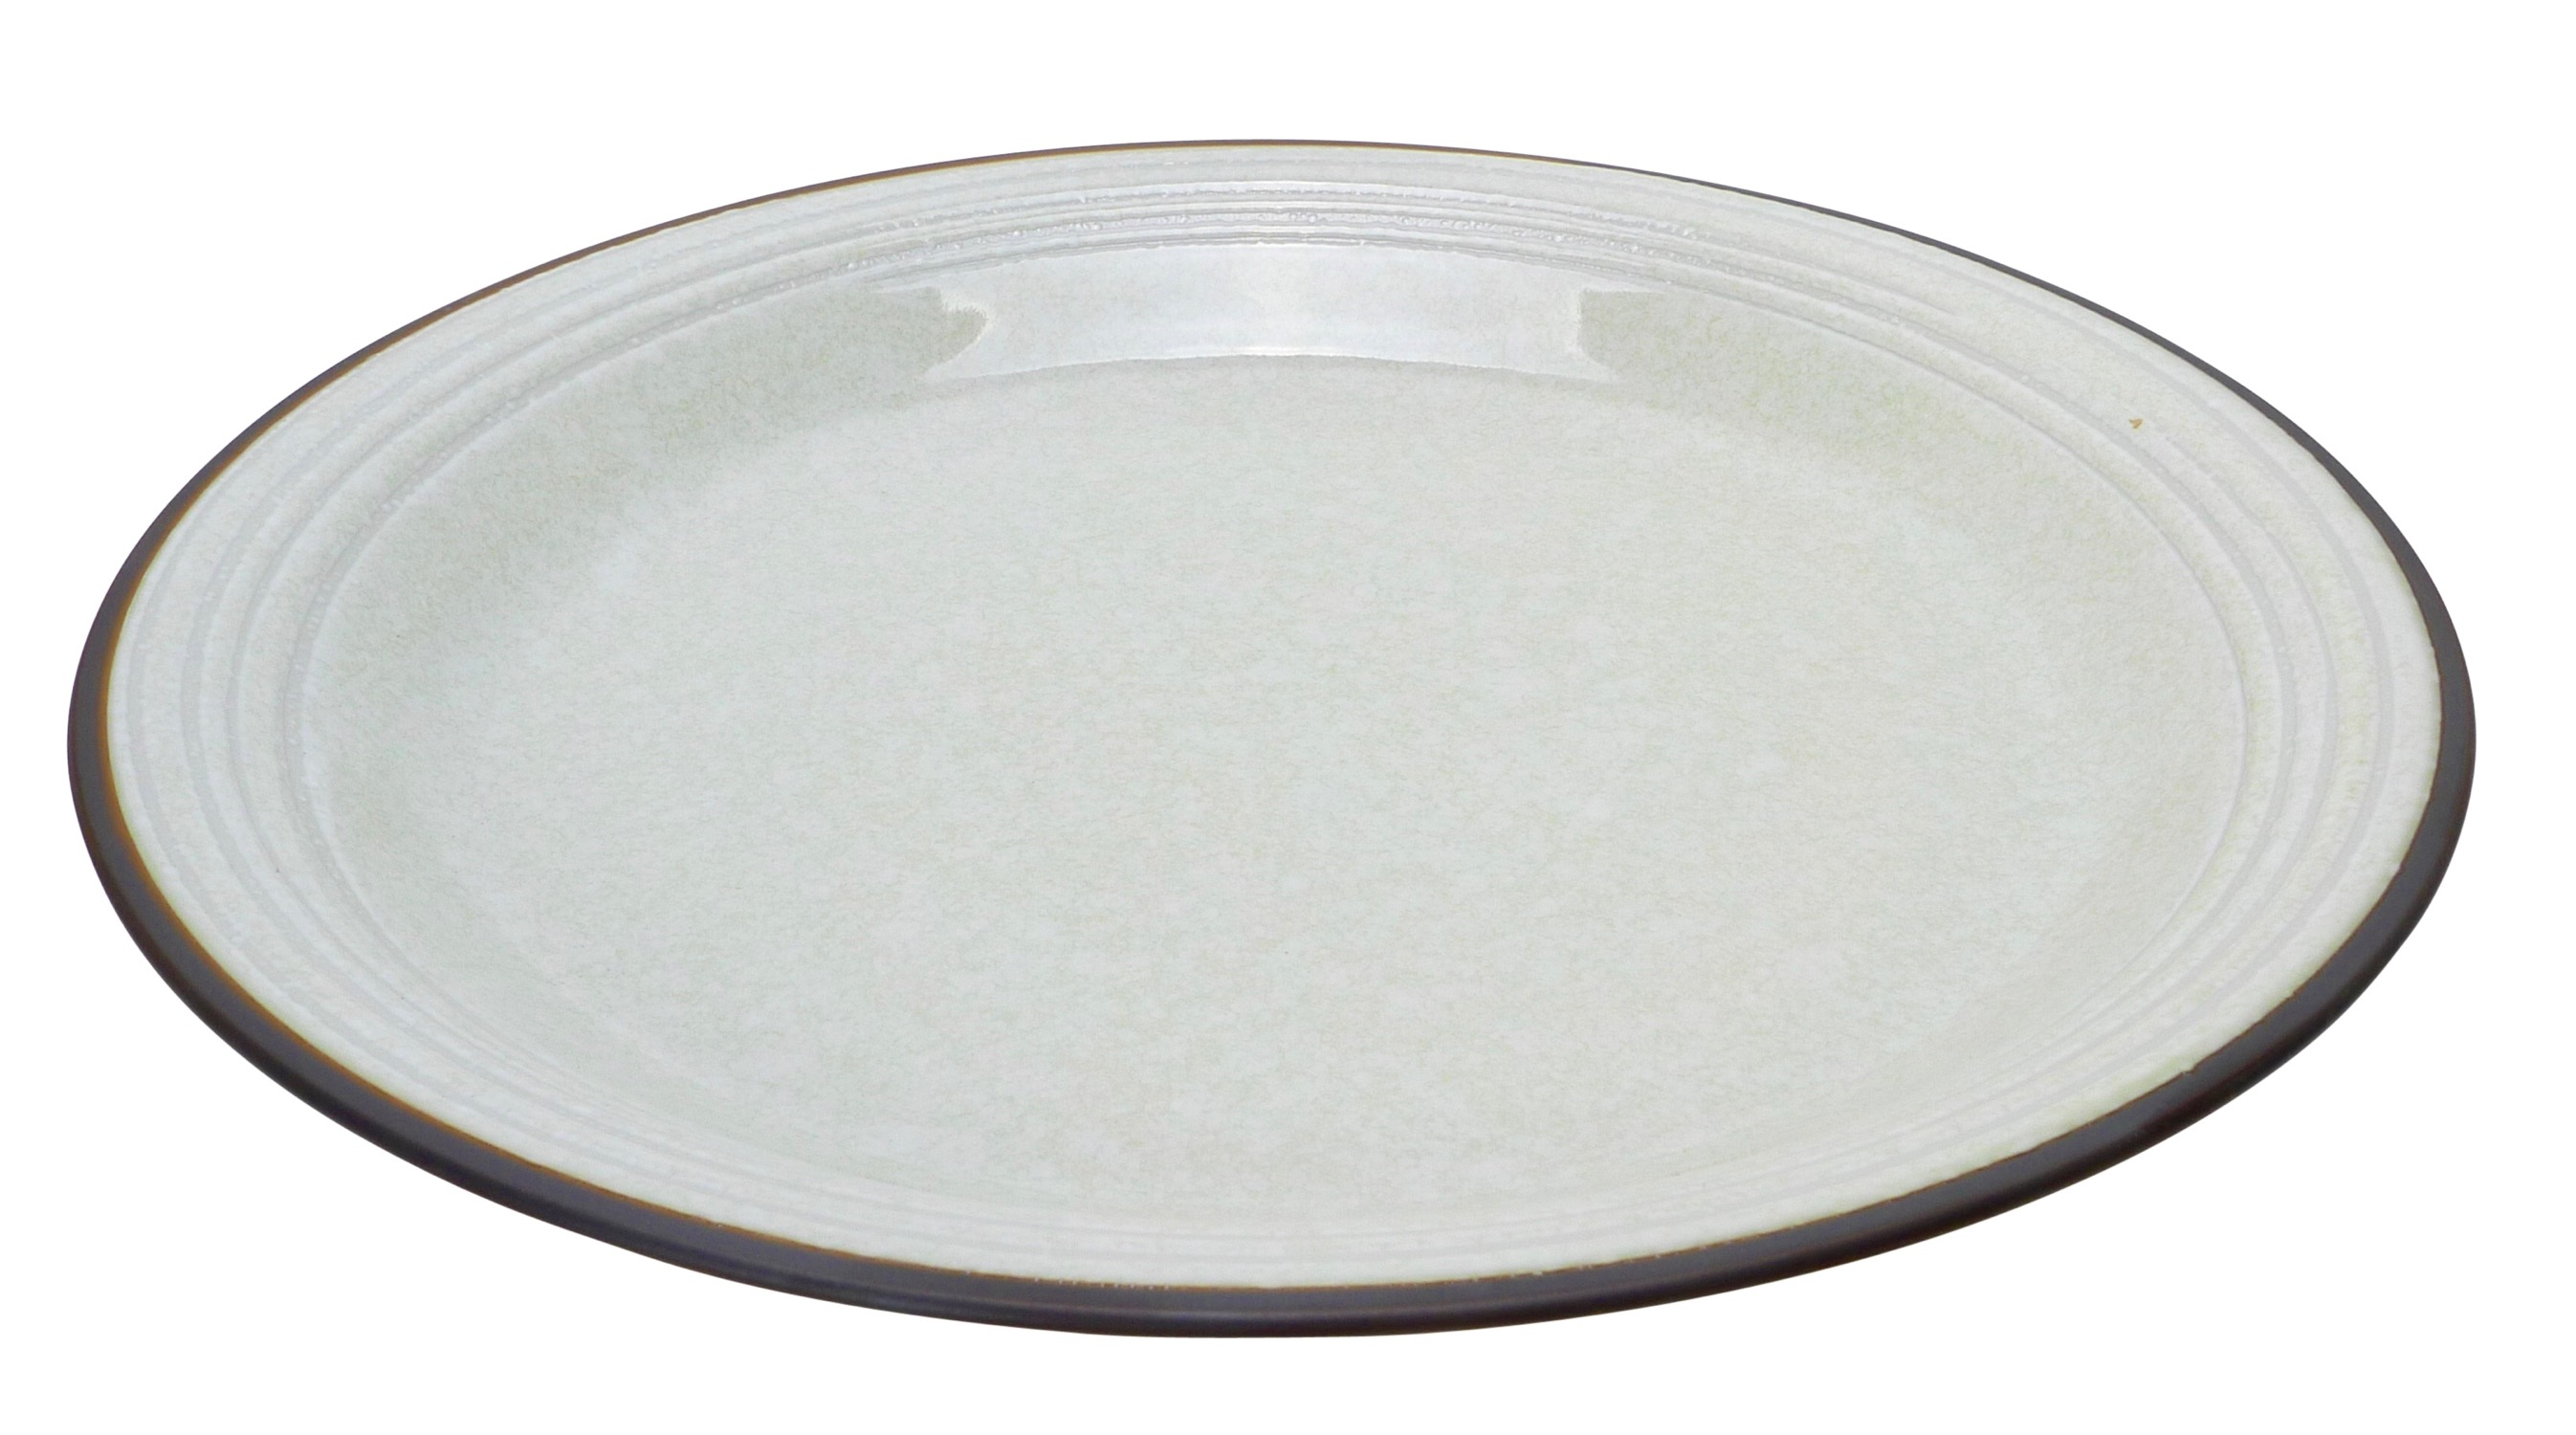 Image of SERVING PLATE - White Handformed Porcelain 11-Inch